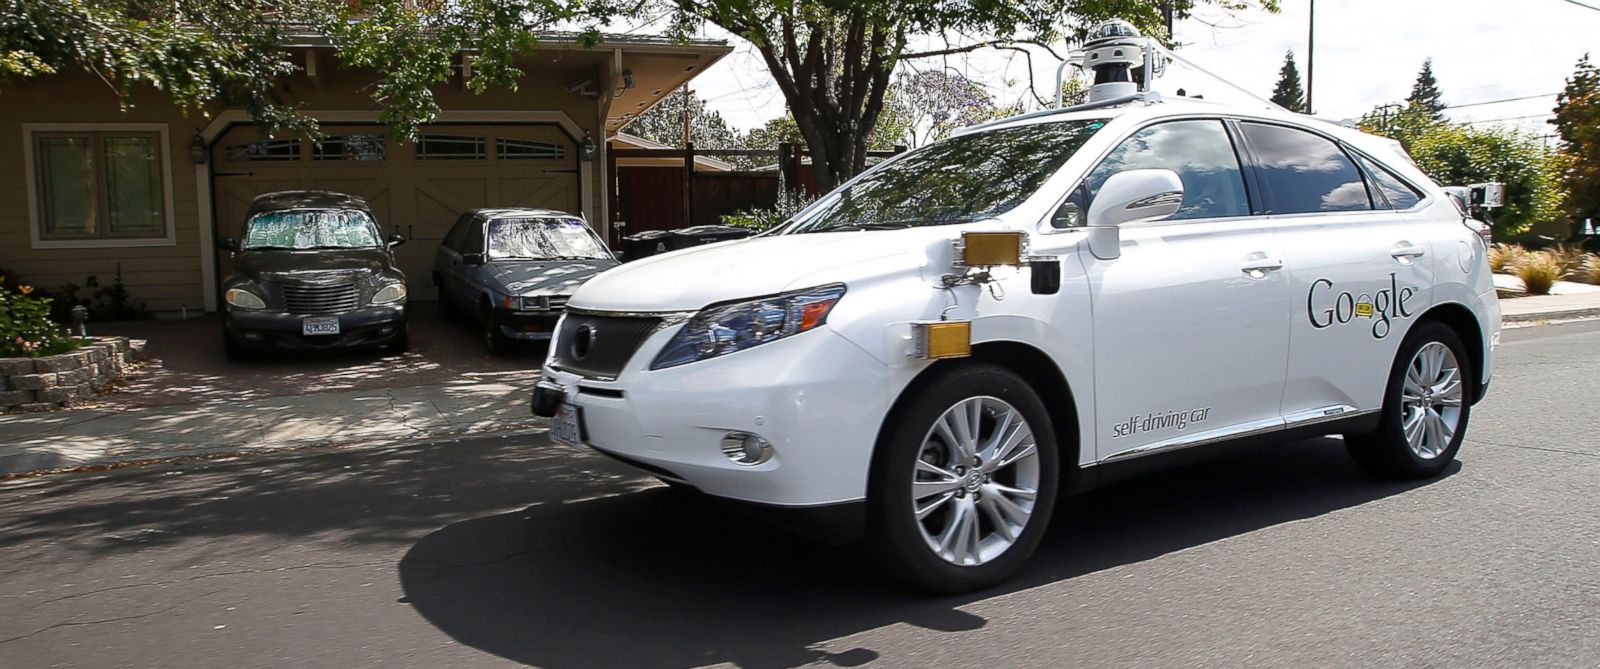 PHOTO: Googles self-driving Lexus drives along street during a demonstration at Google campus on May 13, 2015, in Mountain View, Calif.